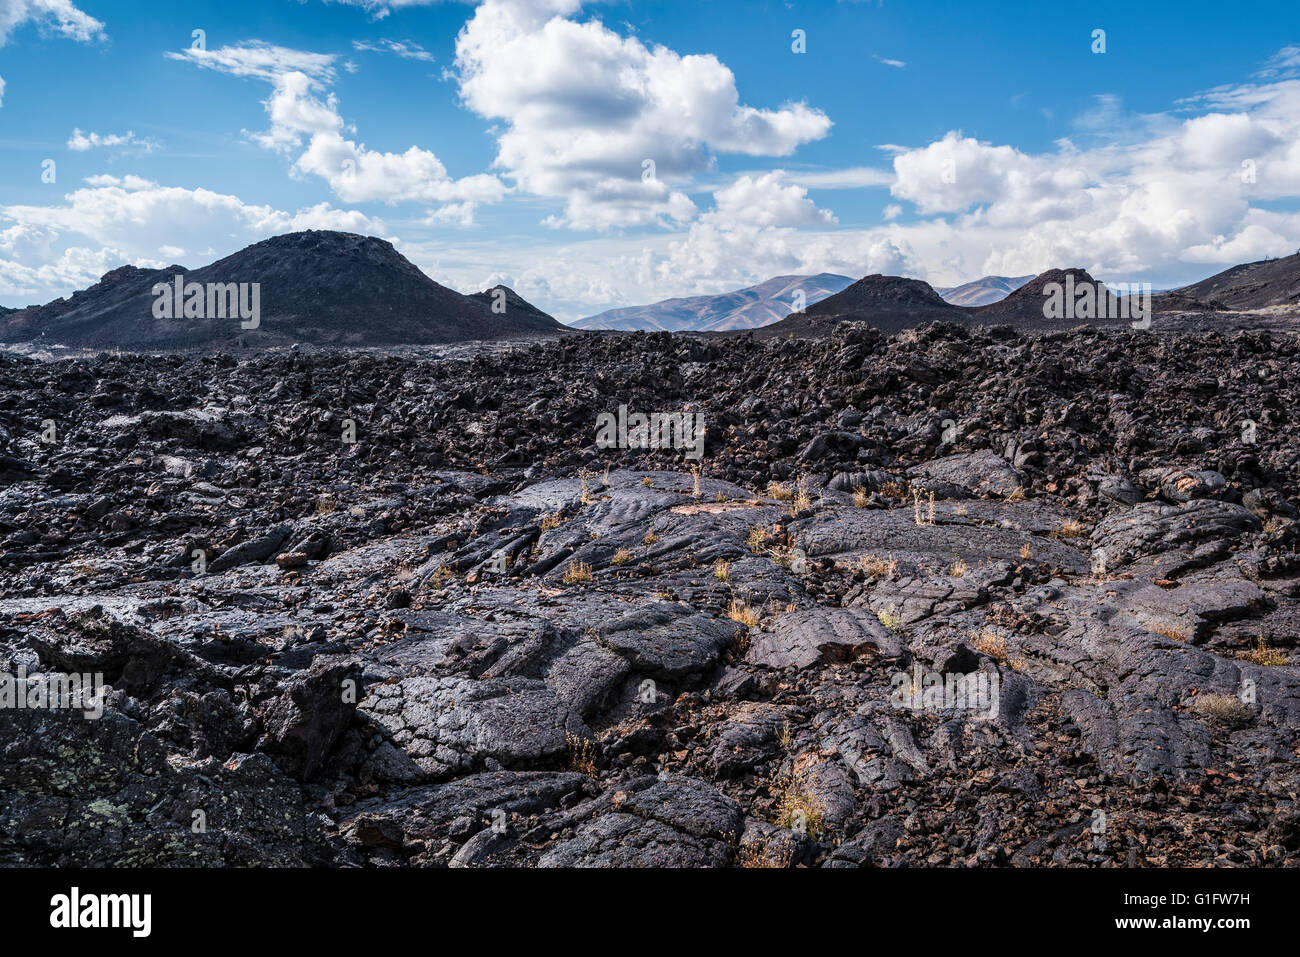 Craters of the Moon National Monument, Idaho. Stock Photo